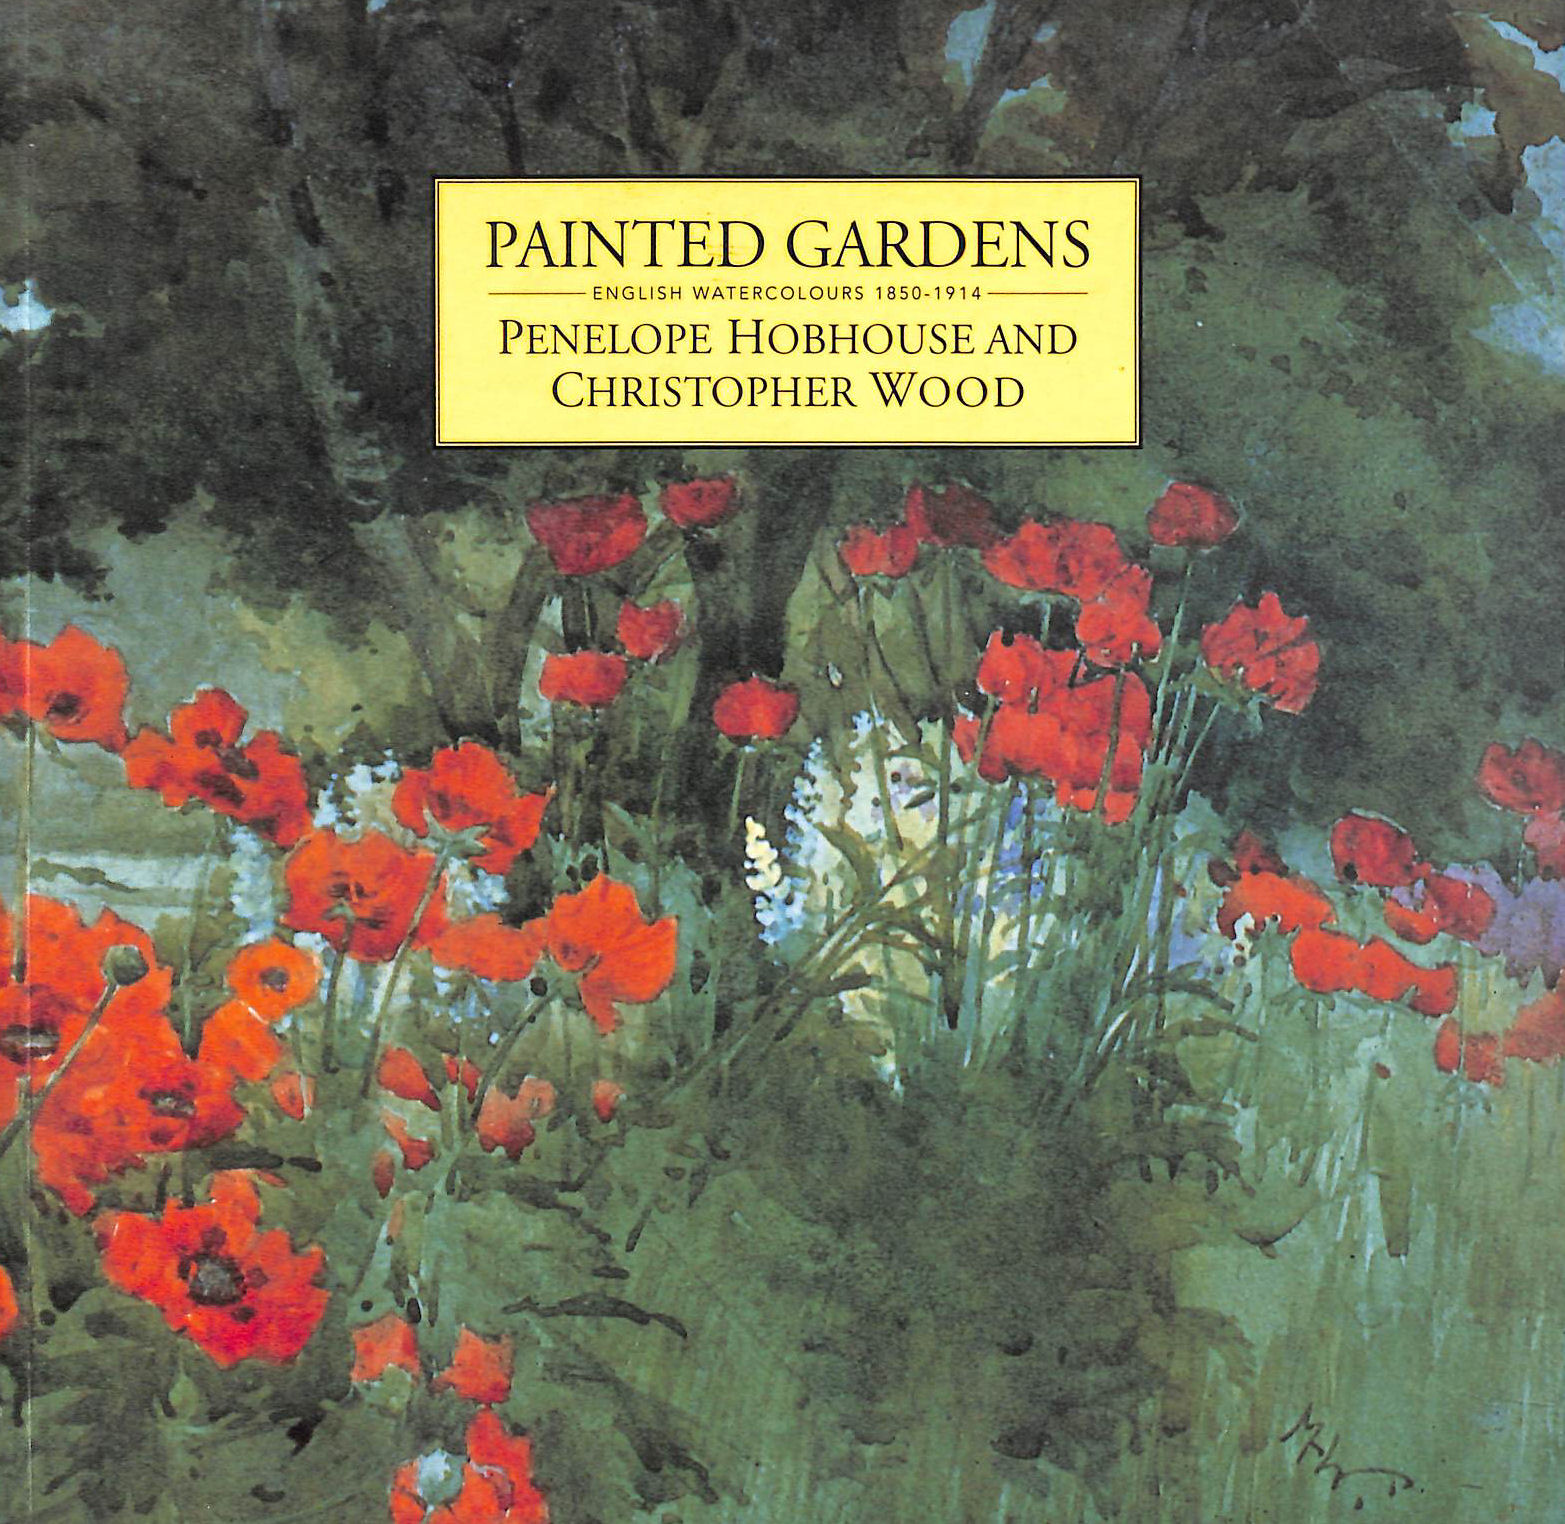 HOBHOUSE, PENELOPE; WOOD, CHRISTOPHER - Painted Gardens: English Watercolours 1850-1914